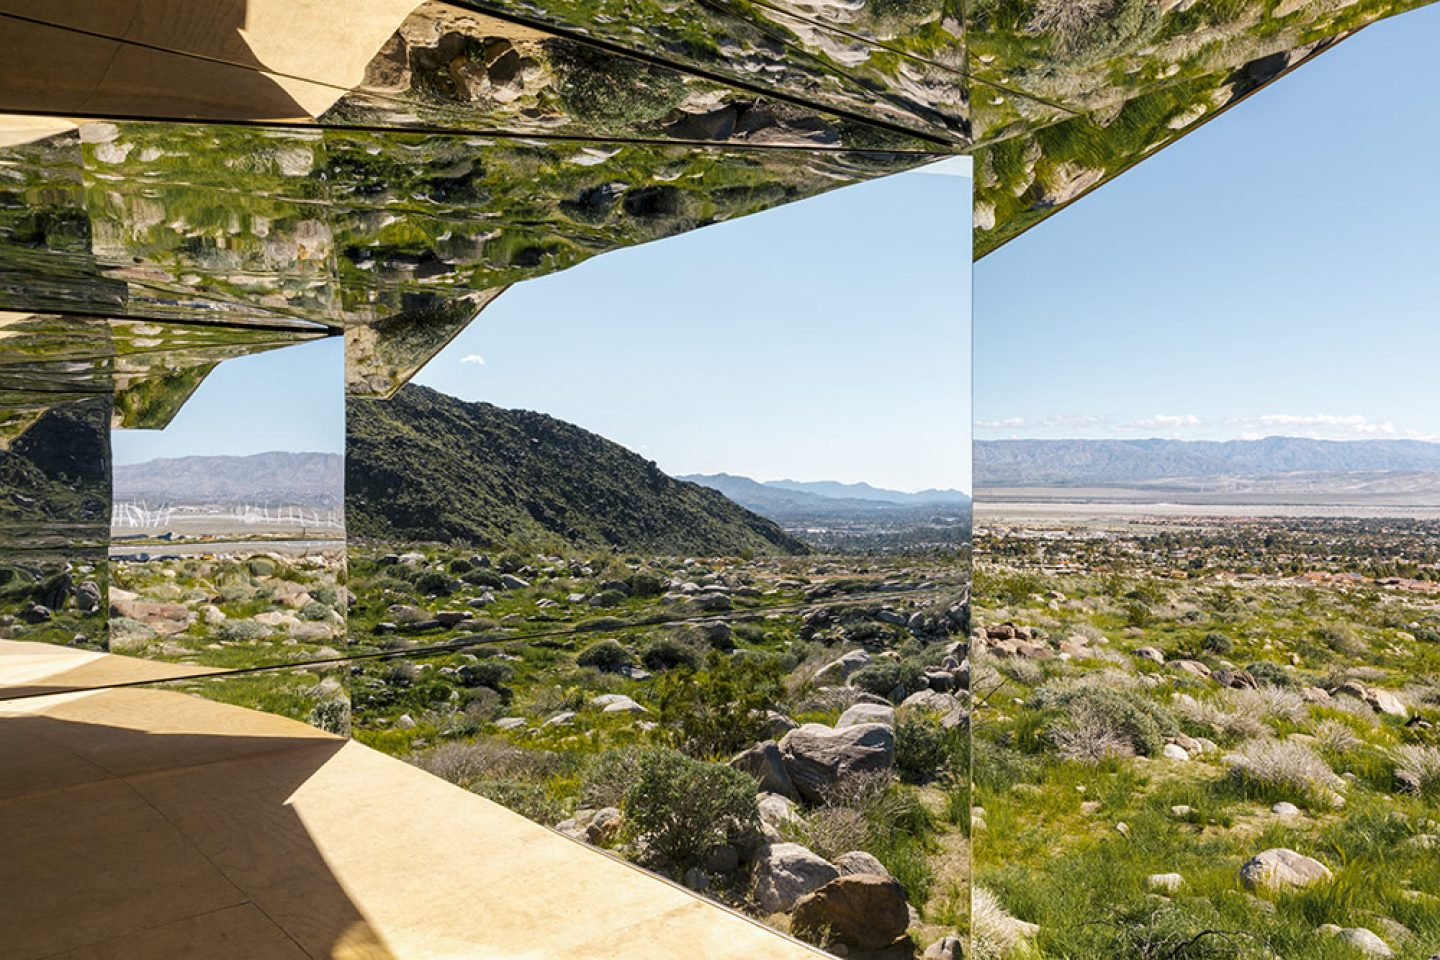 Art_Doug_Aitken_Mirrored_Mirage_7